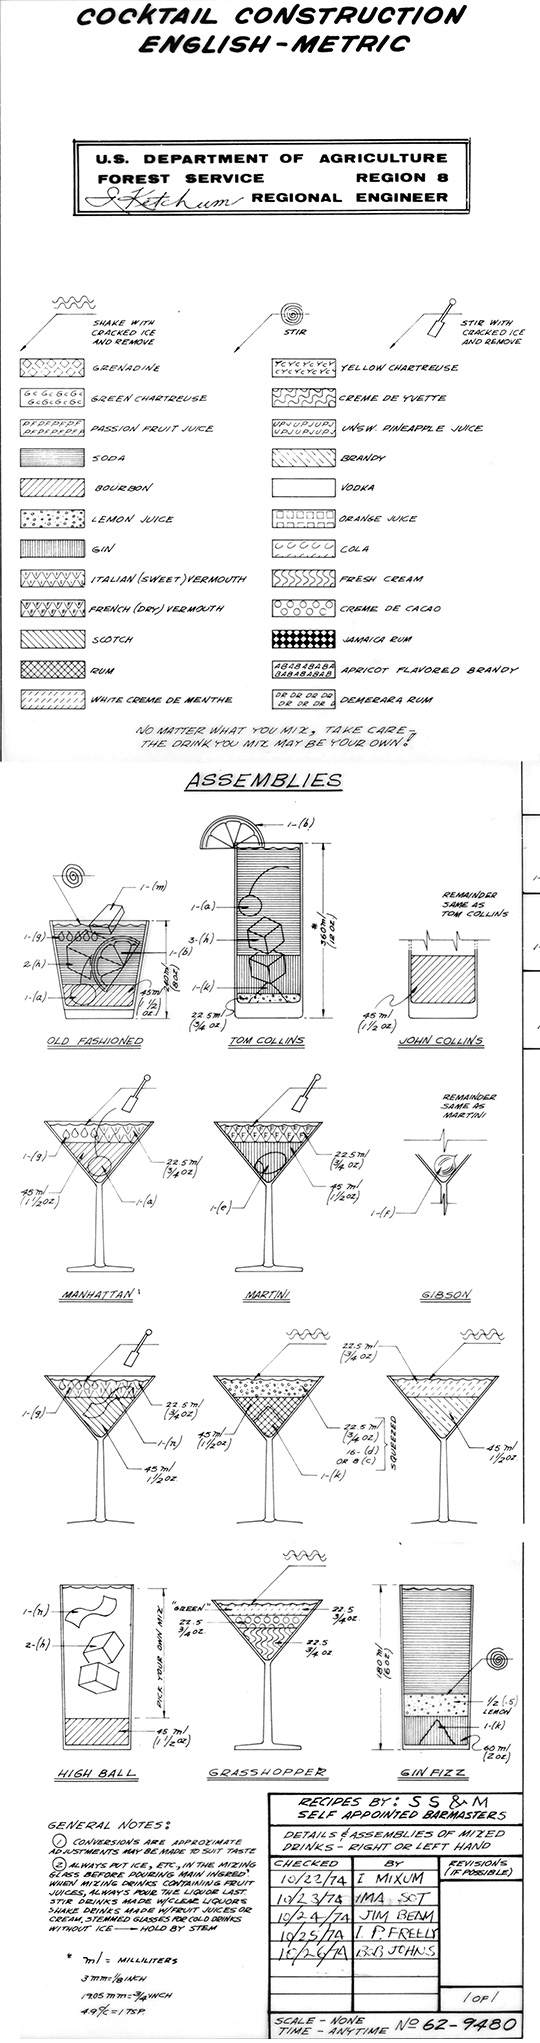 Free art download a forest service engineers guide to cocktails forest service cocktail blueprint malvernweather Choice Image